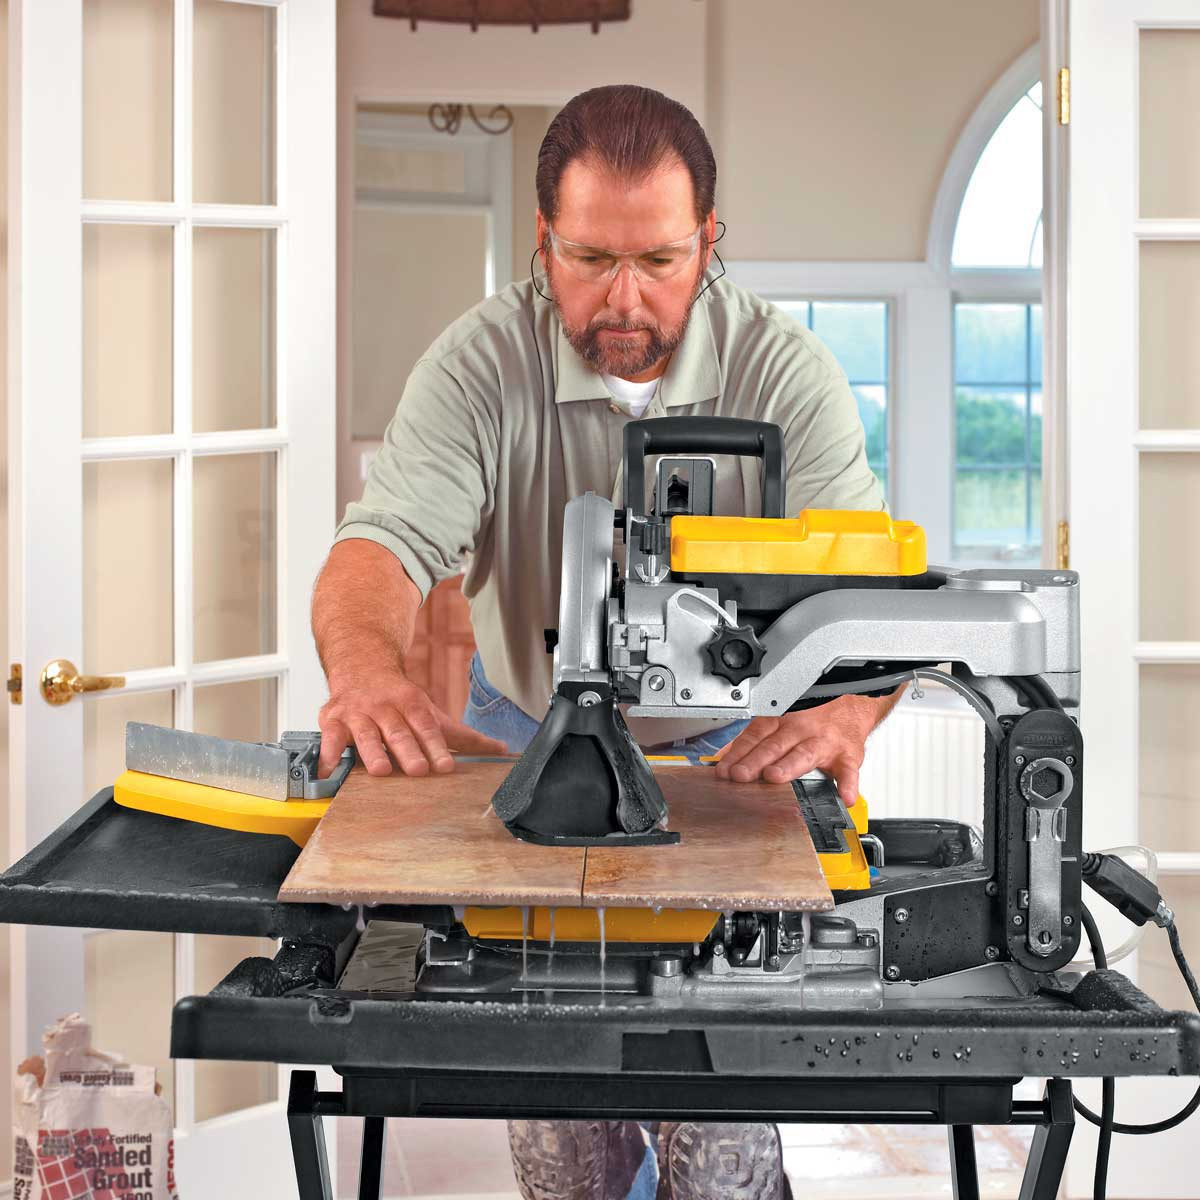 dewalt tile saw cutting tile